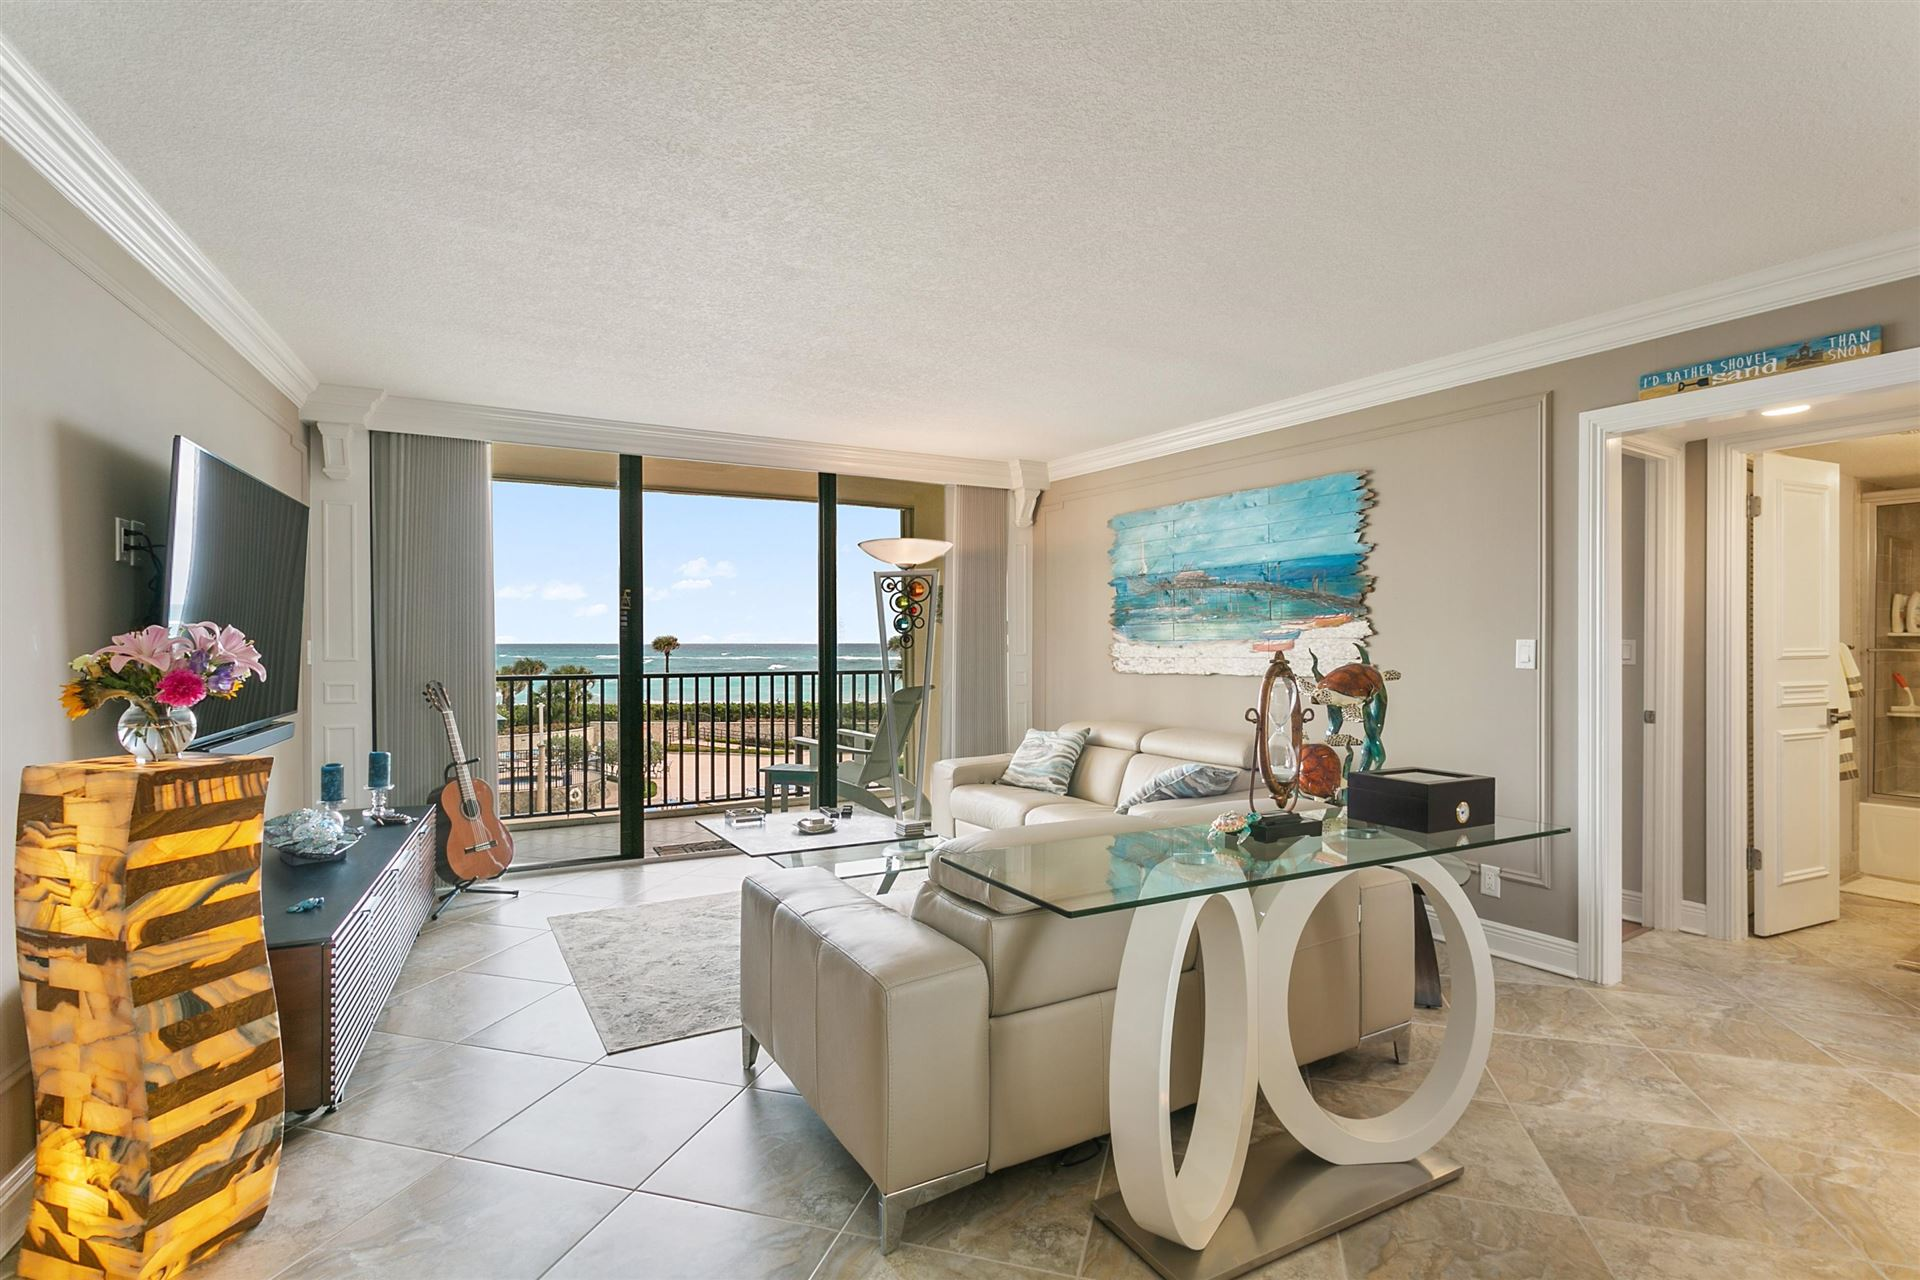 Photo of 300 Ocean Trail Way #307, Jupiter, FL 33477 (MLS # RX-10670686)